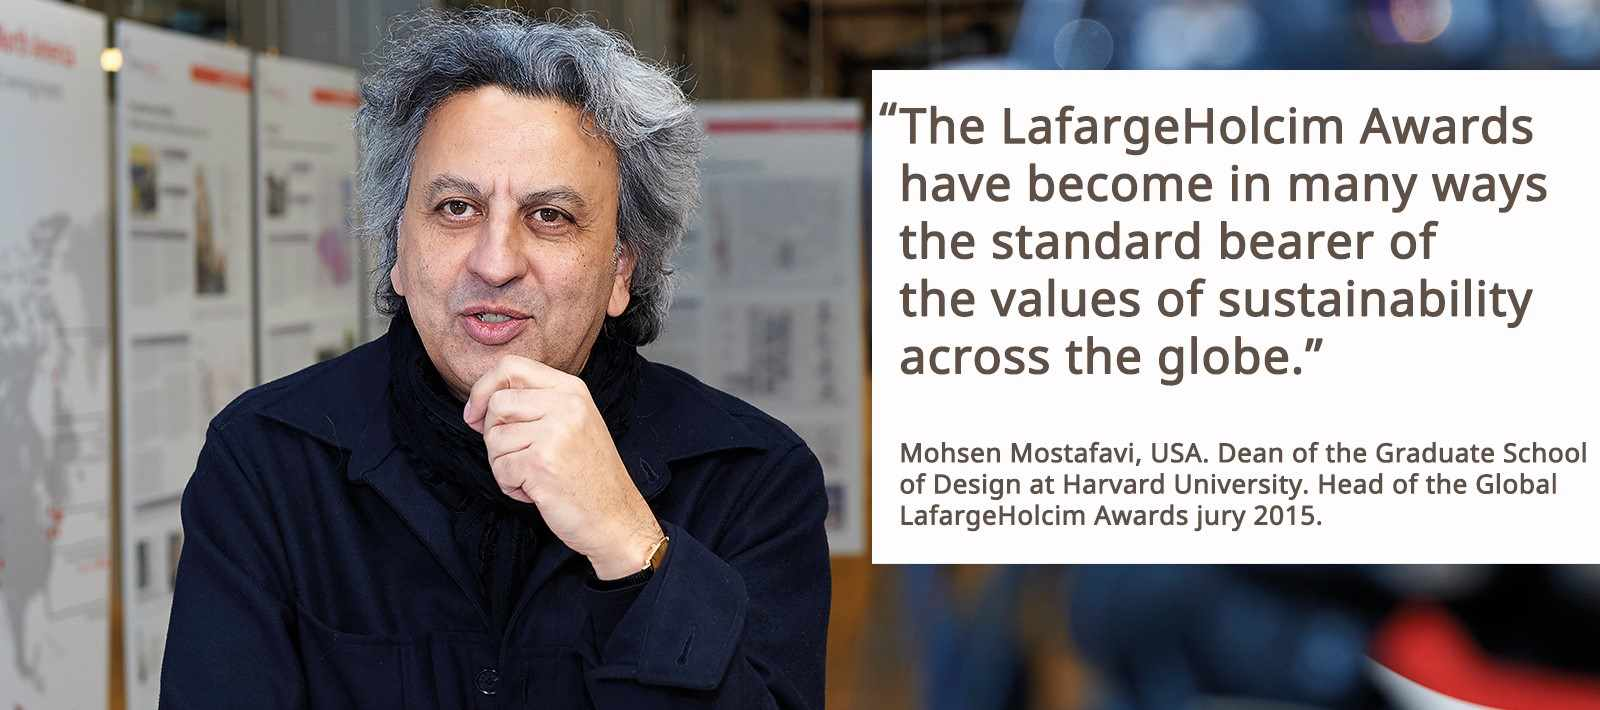 LafargeHolcim Awards 2016/2017: Juries